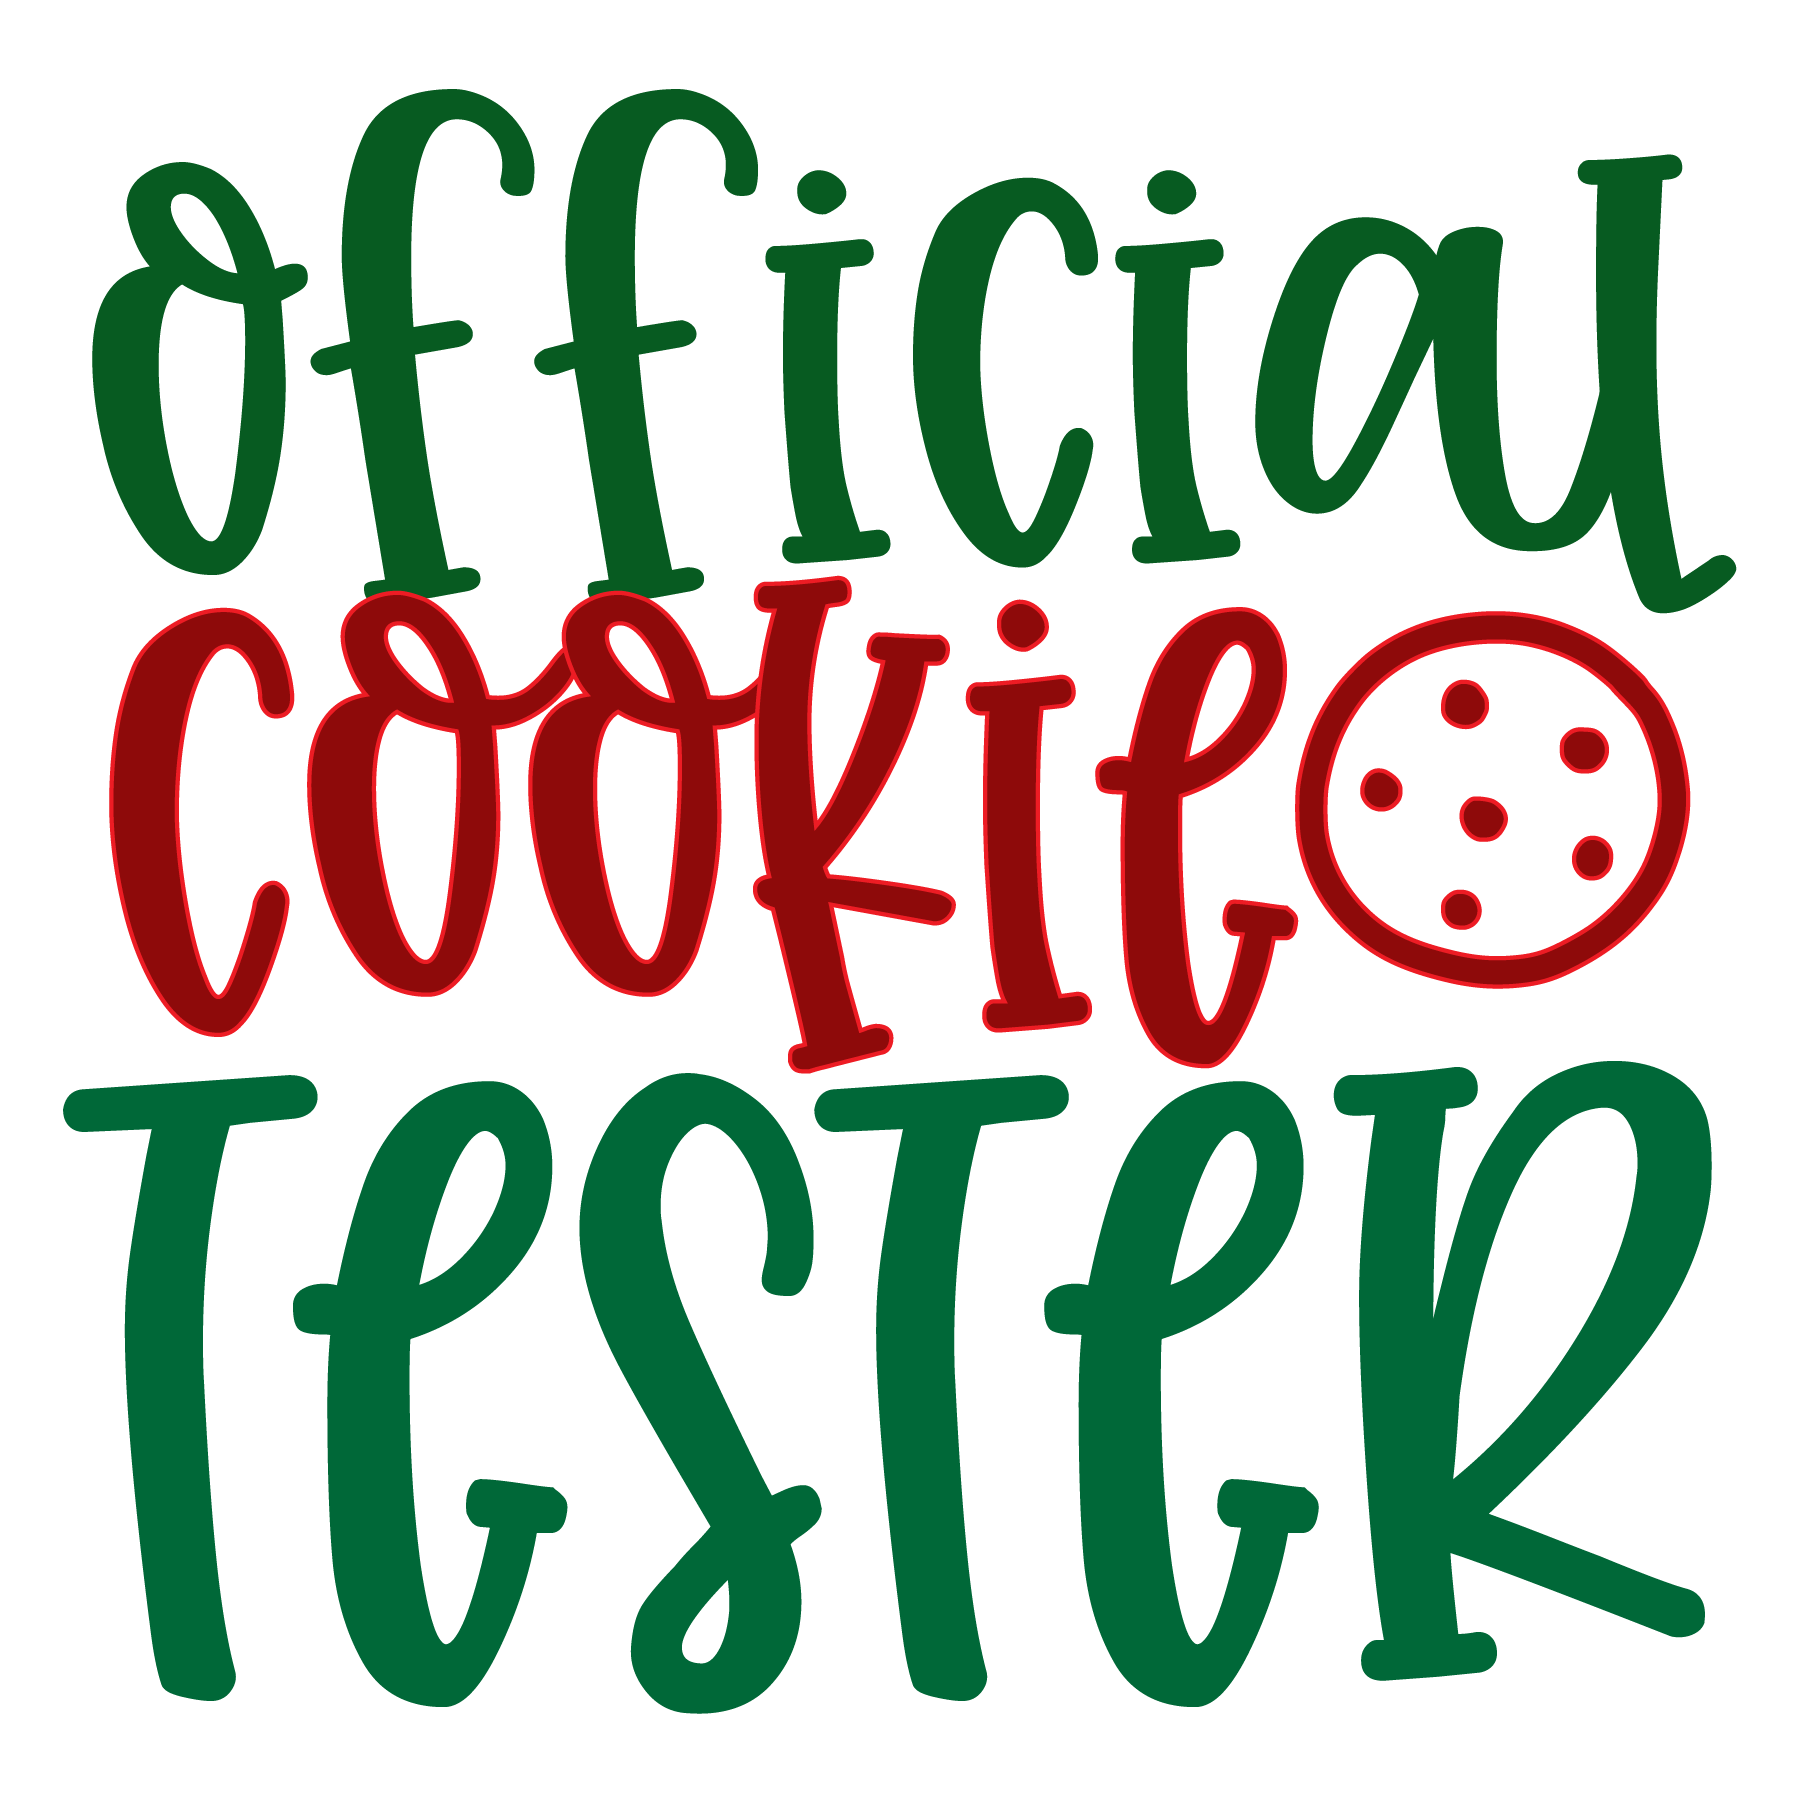 Official Cookie Tester SVG Cut Files